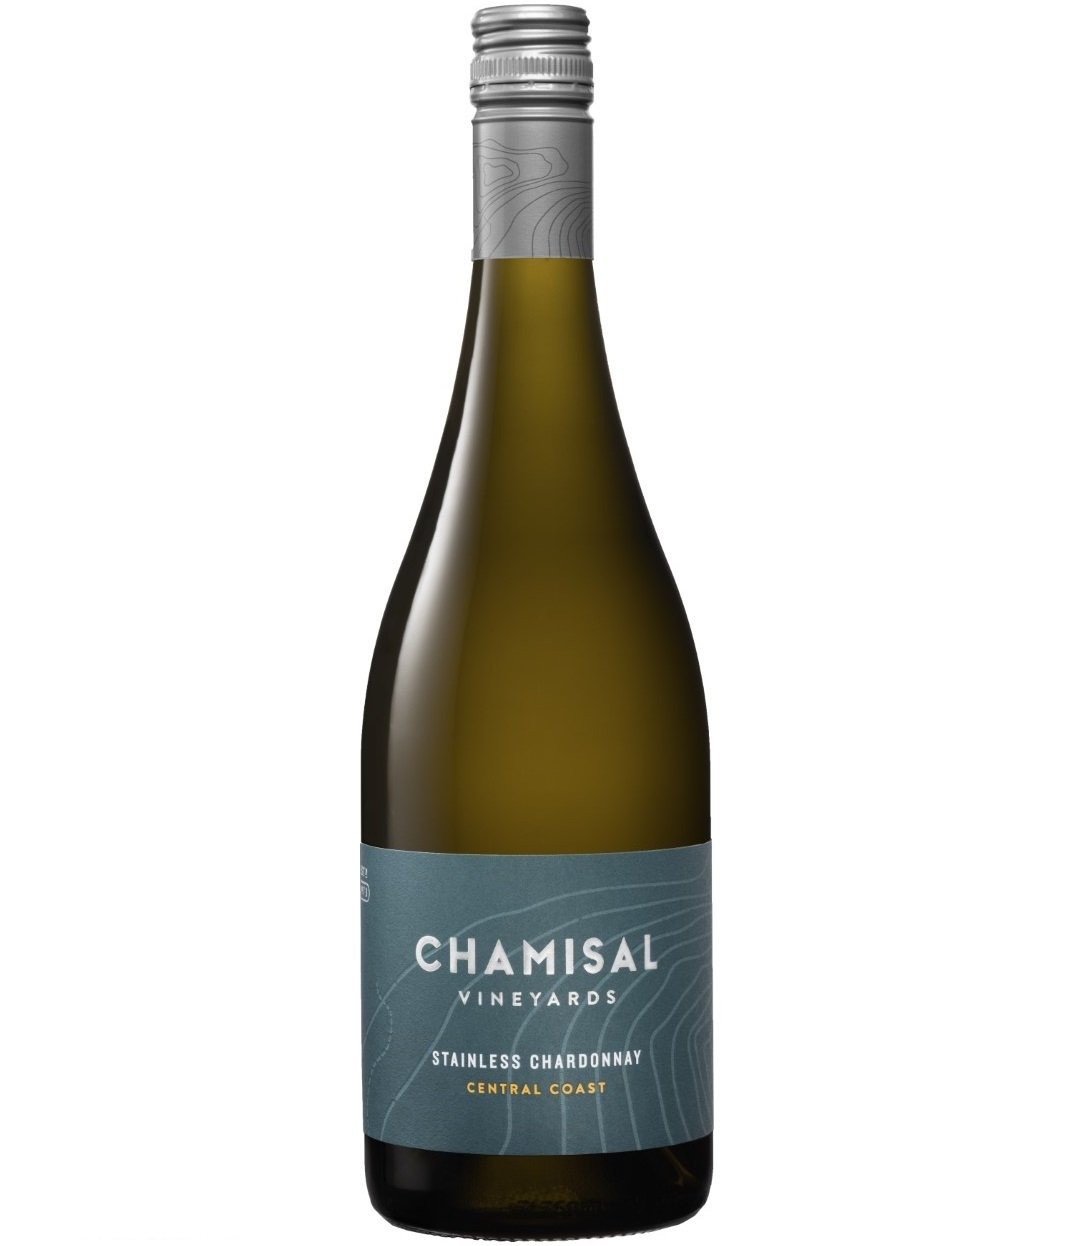 2017 Chamisal Stainless Chardonnay Central Coast